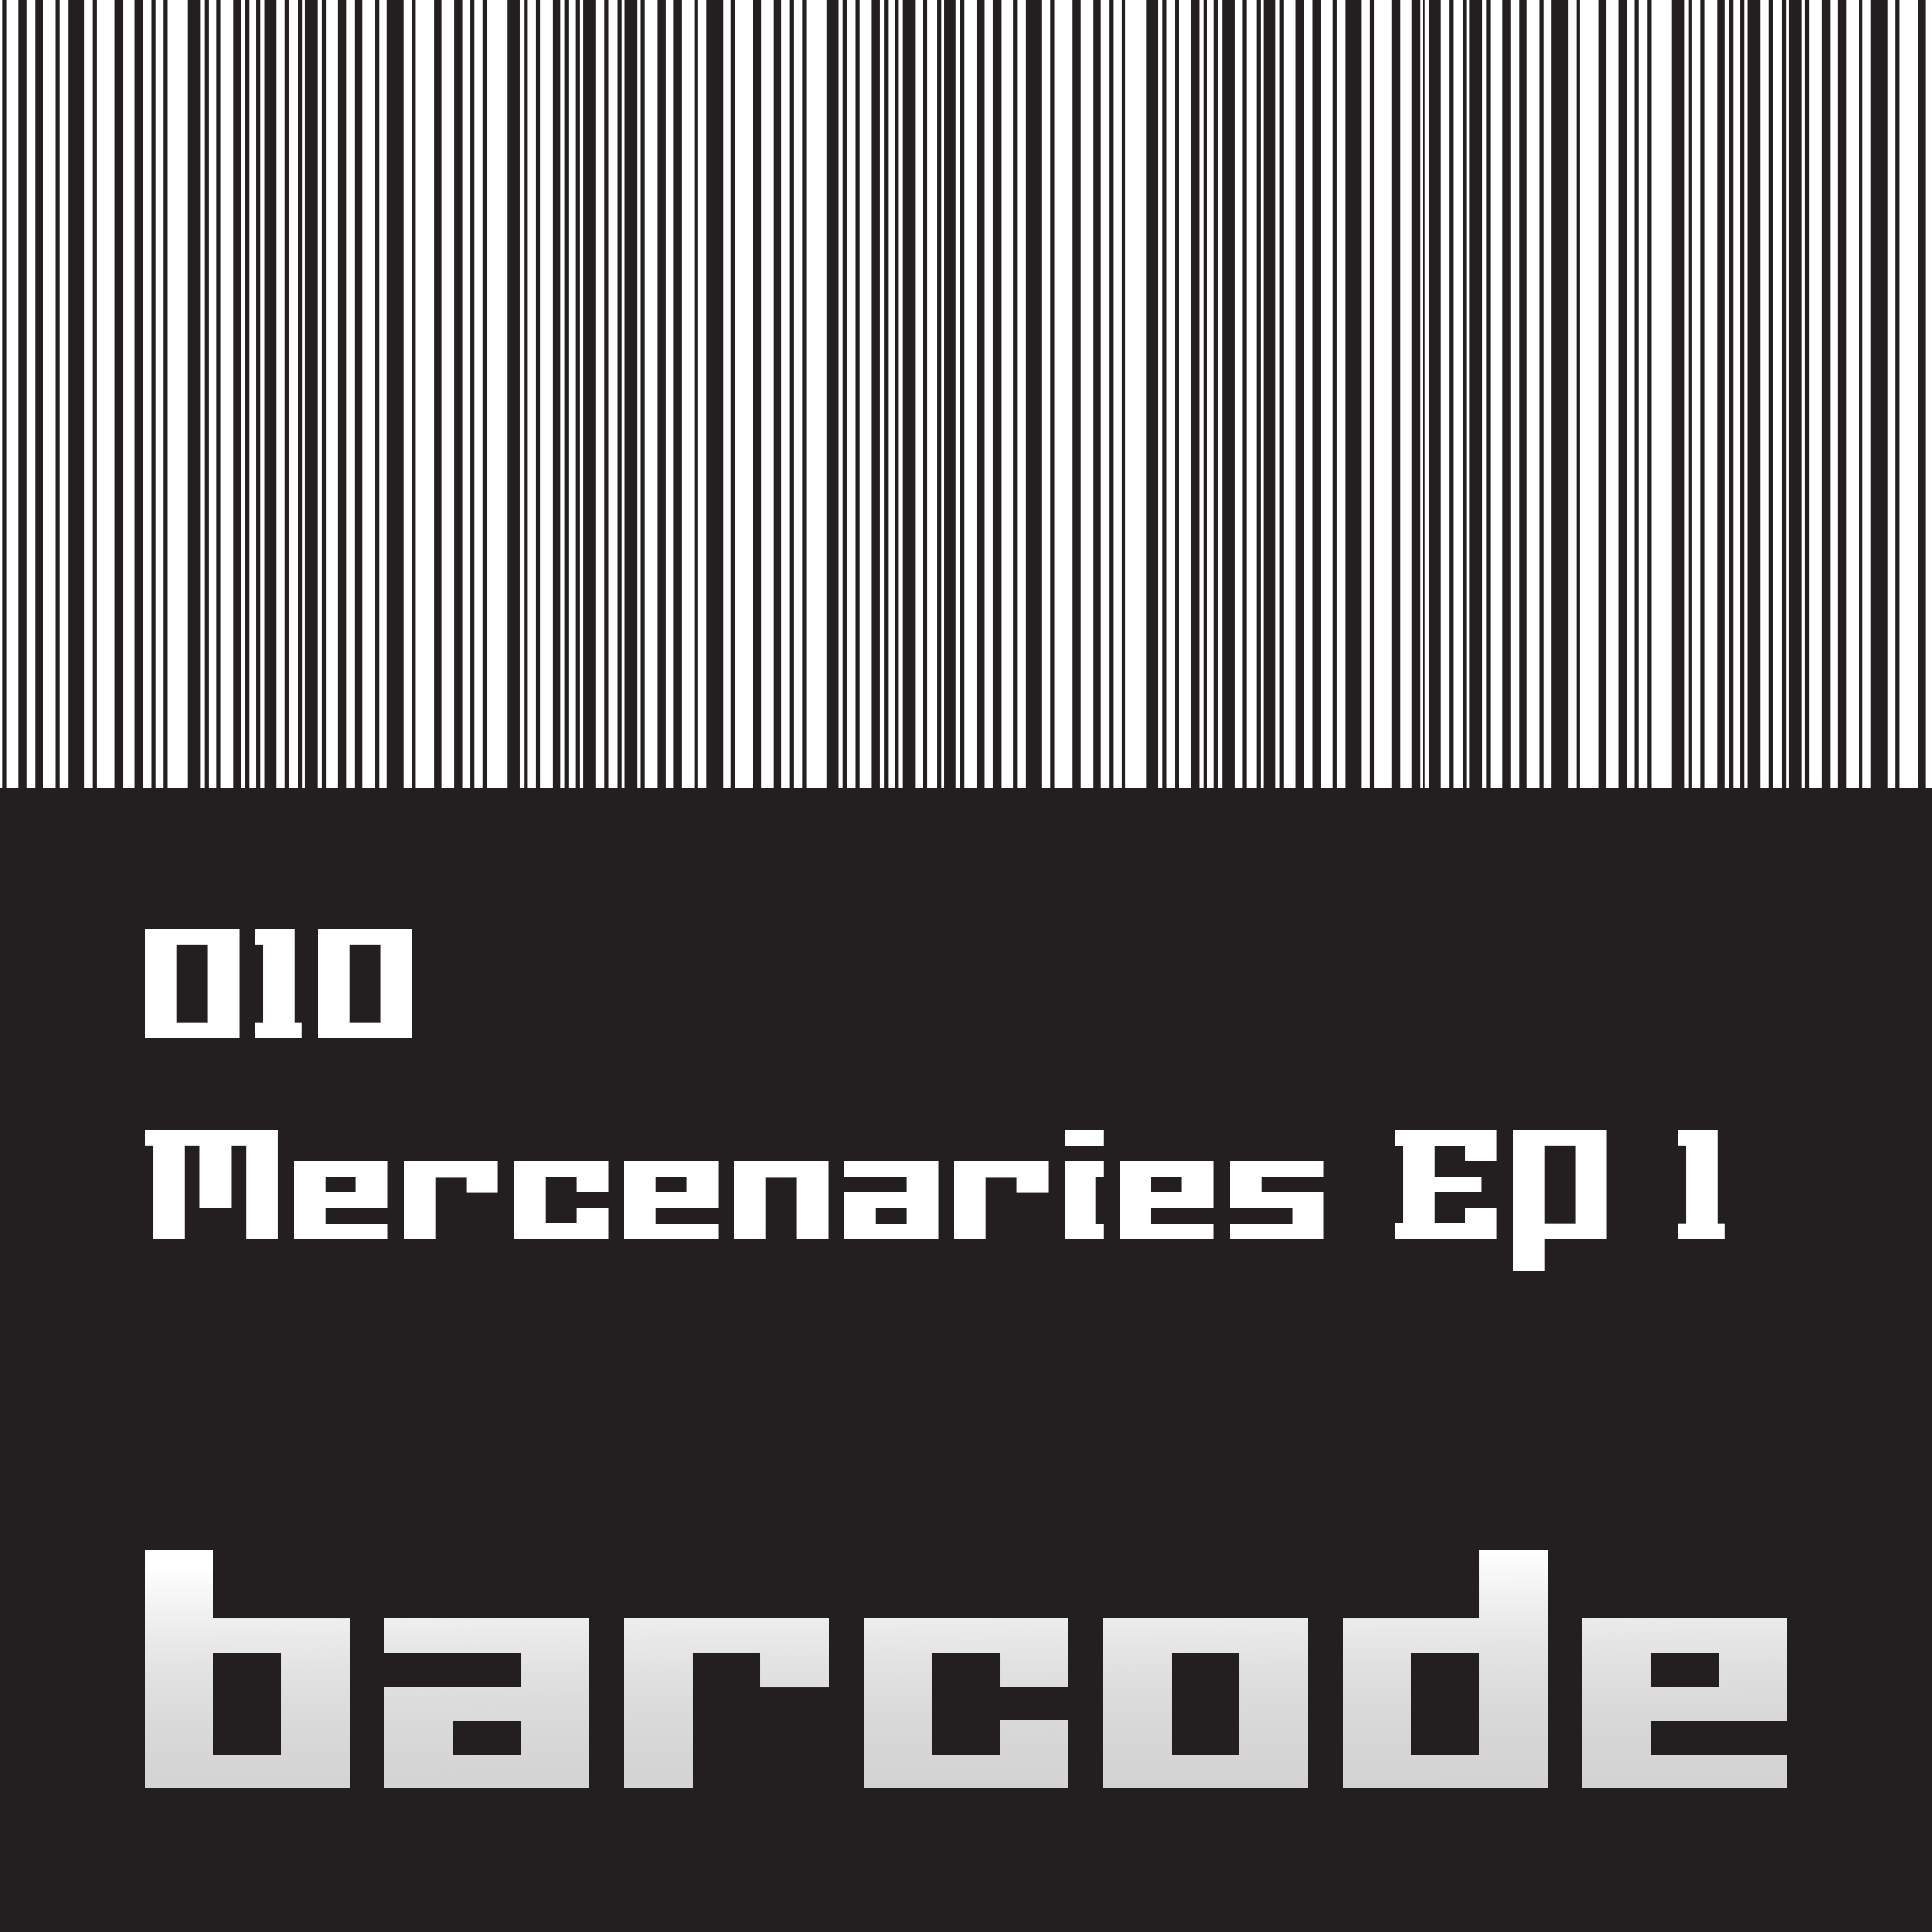 The Mercenaries EP - Phase 1